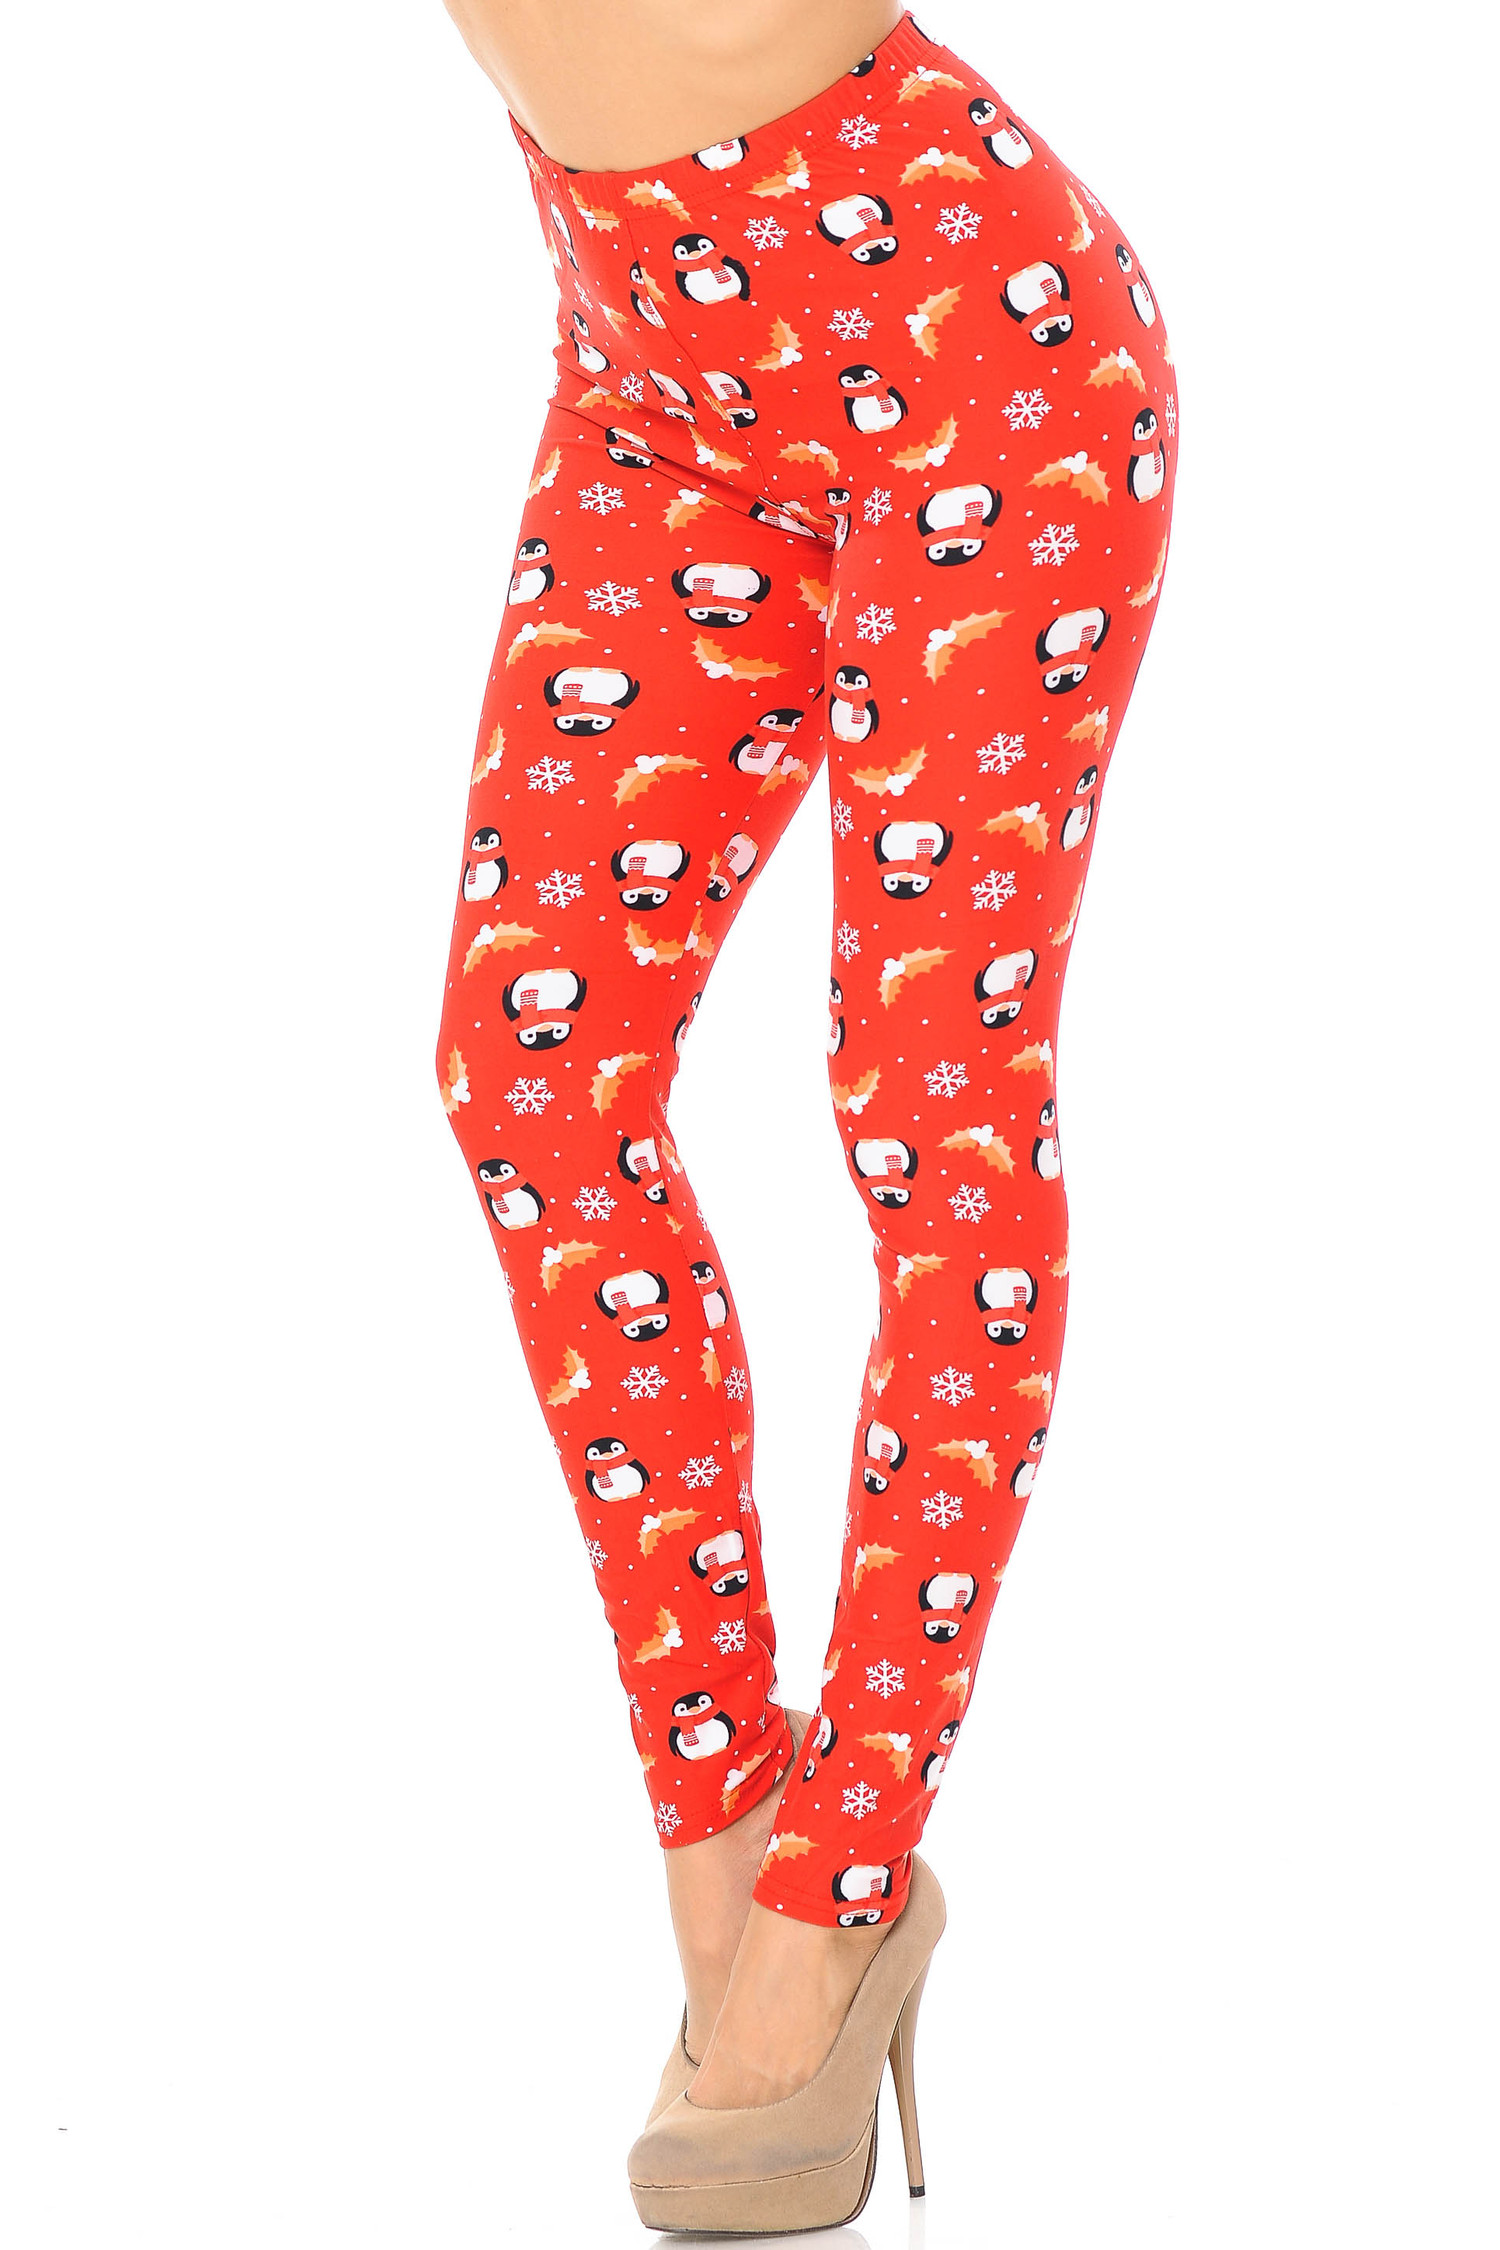 Brushed Ruby Red Penguins Mistletoe and Snowflake Plus Size Leggings